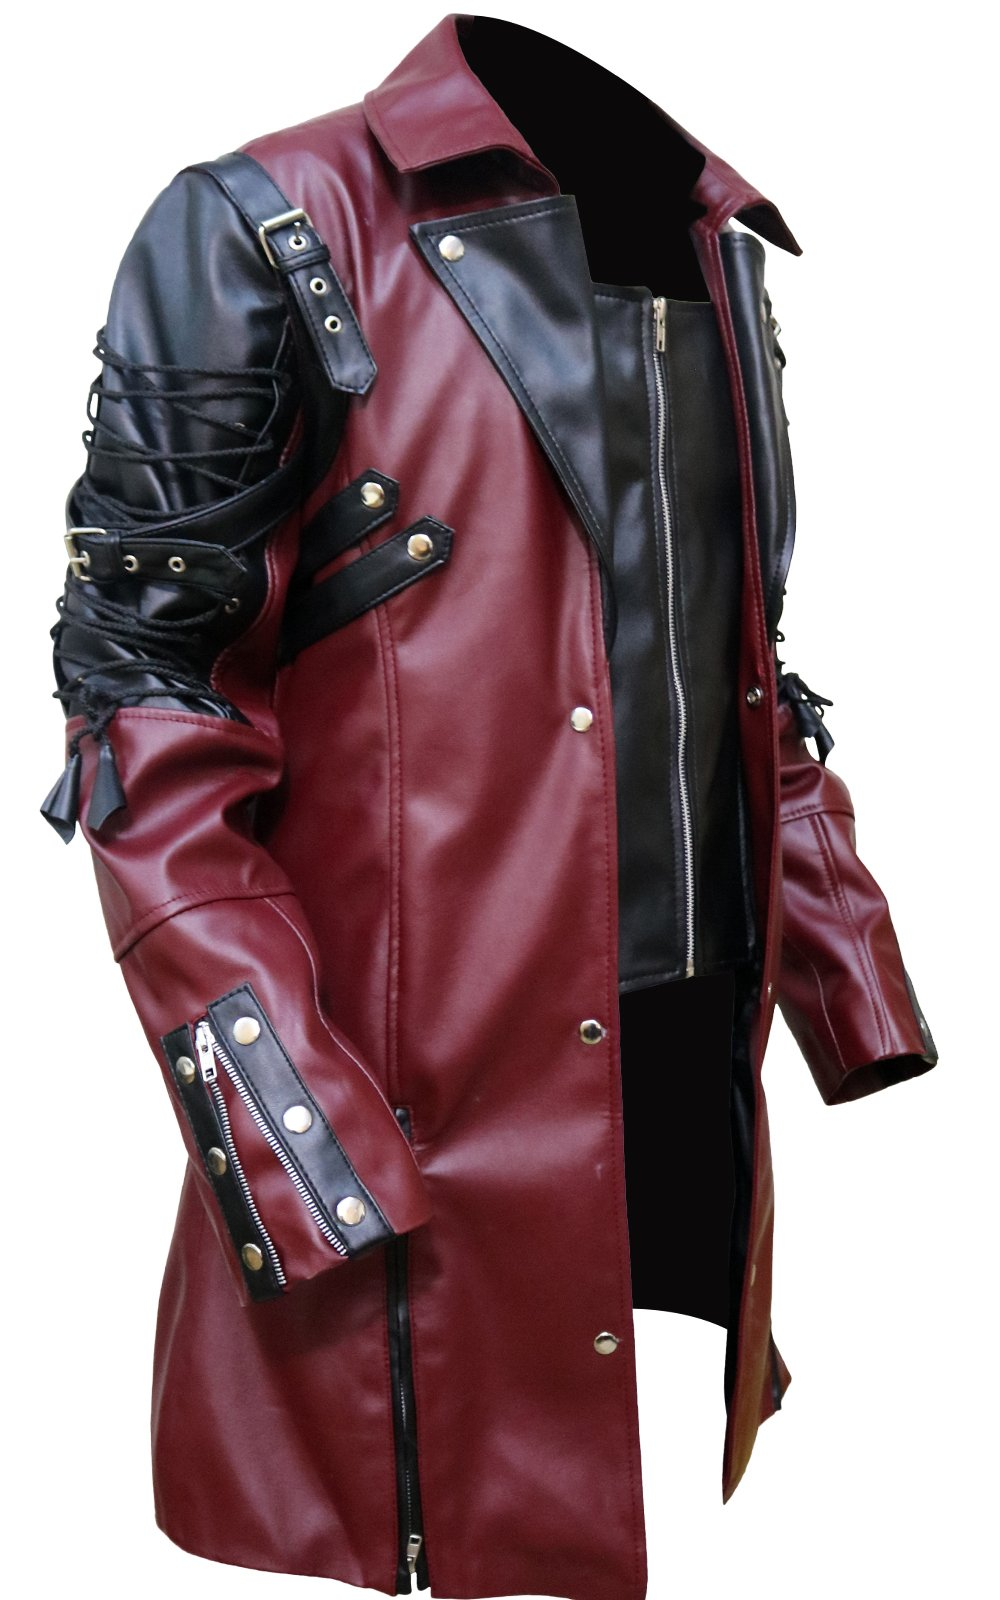 FaddyRox Steampunk Gothic Men Faux Leather Maroon & Black Coat Jacket, XXS - 3XL 5